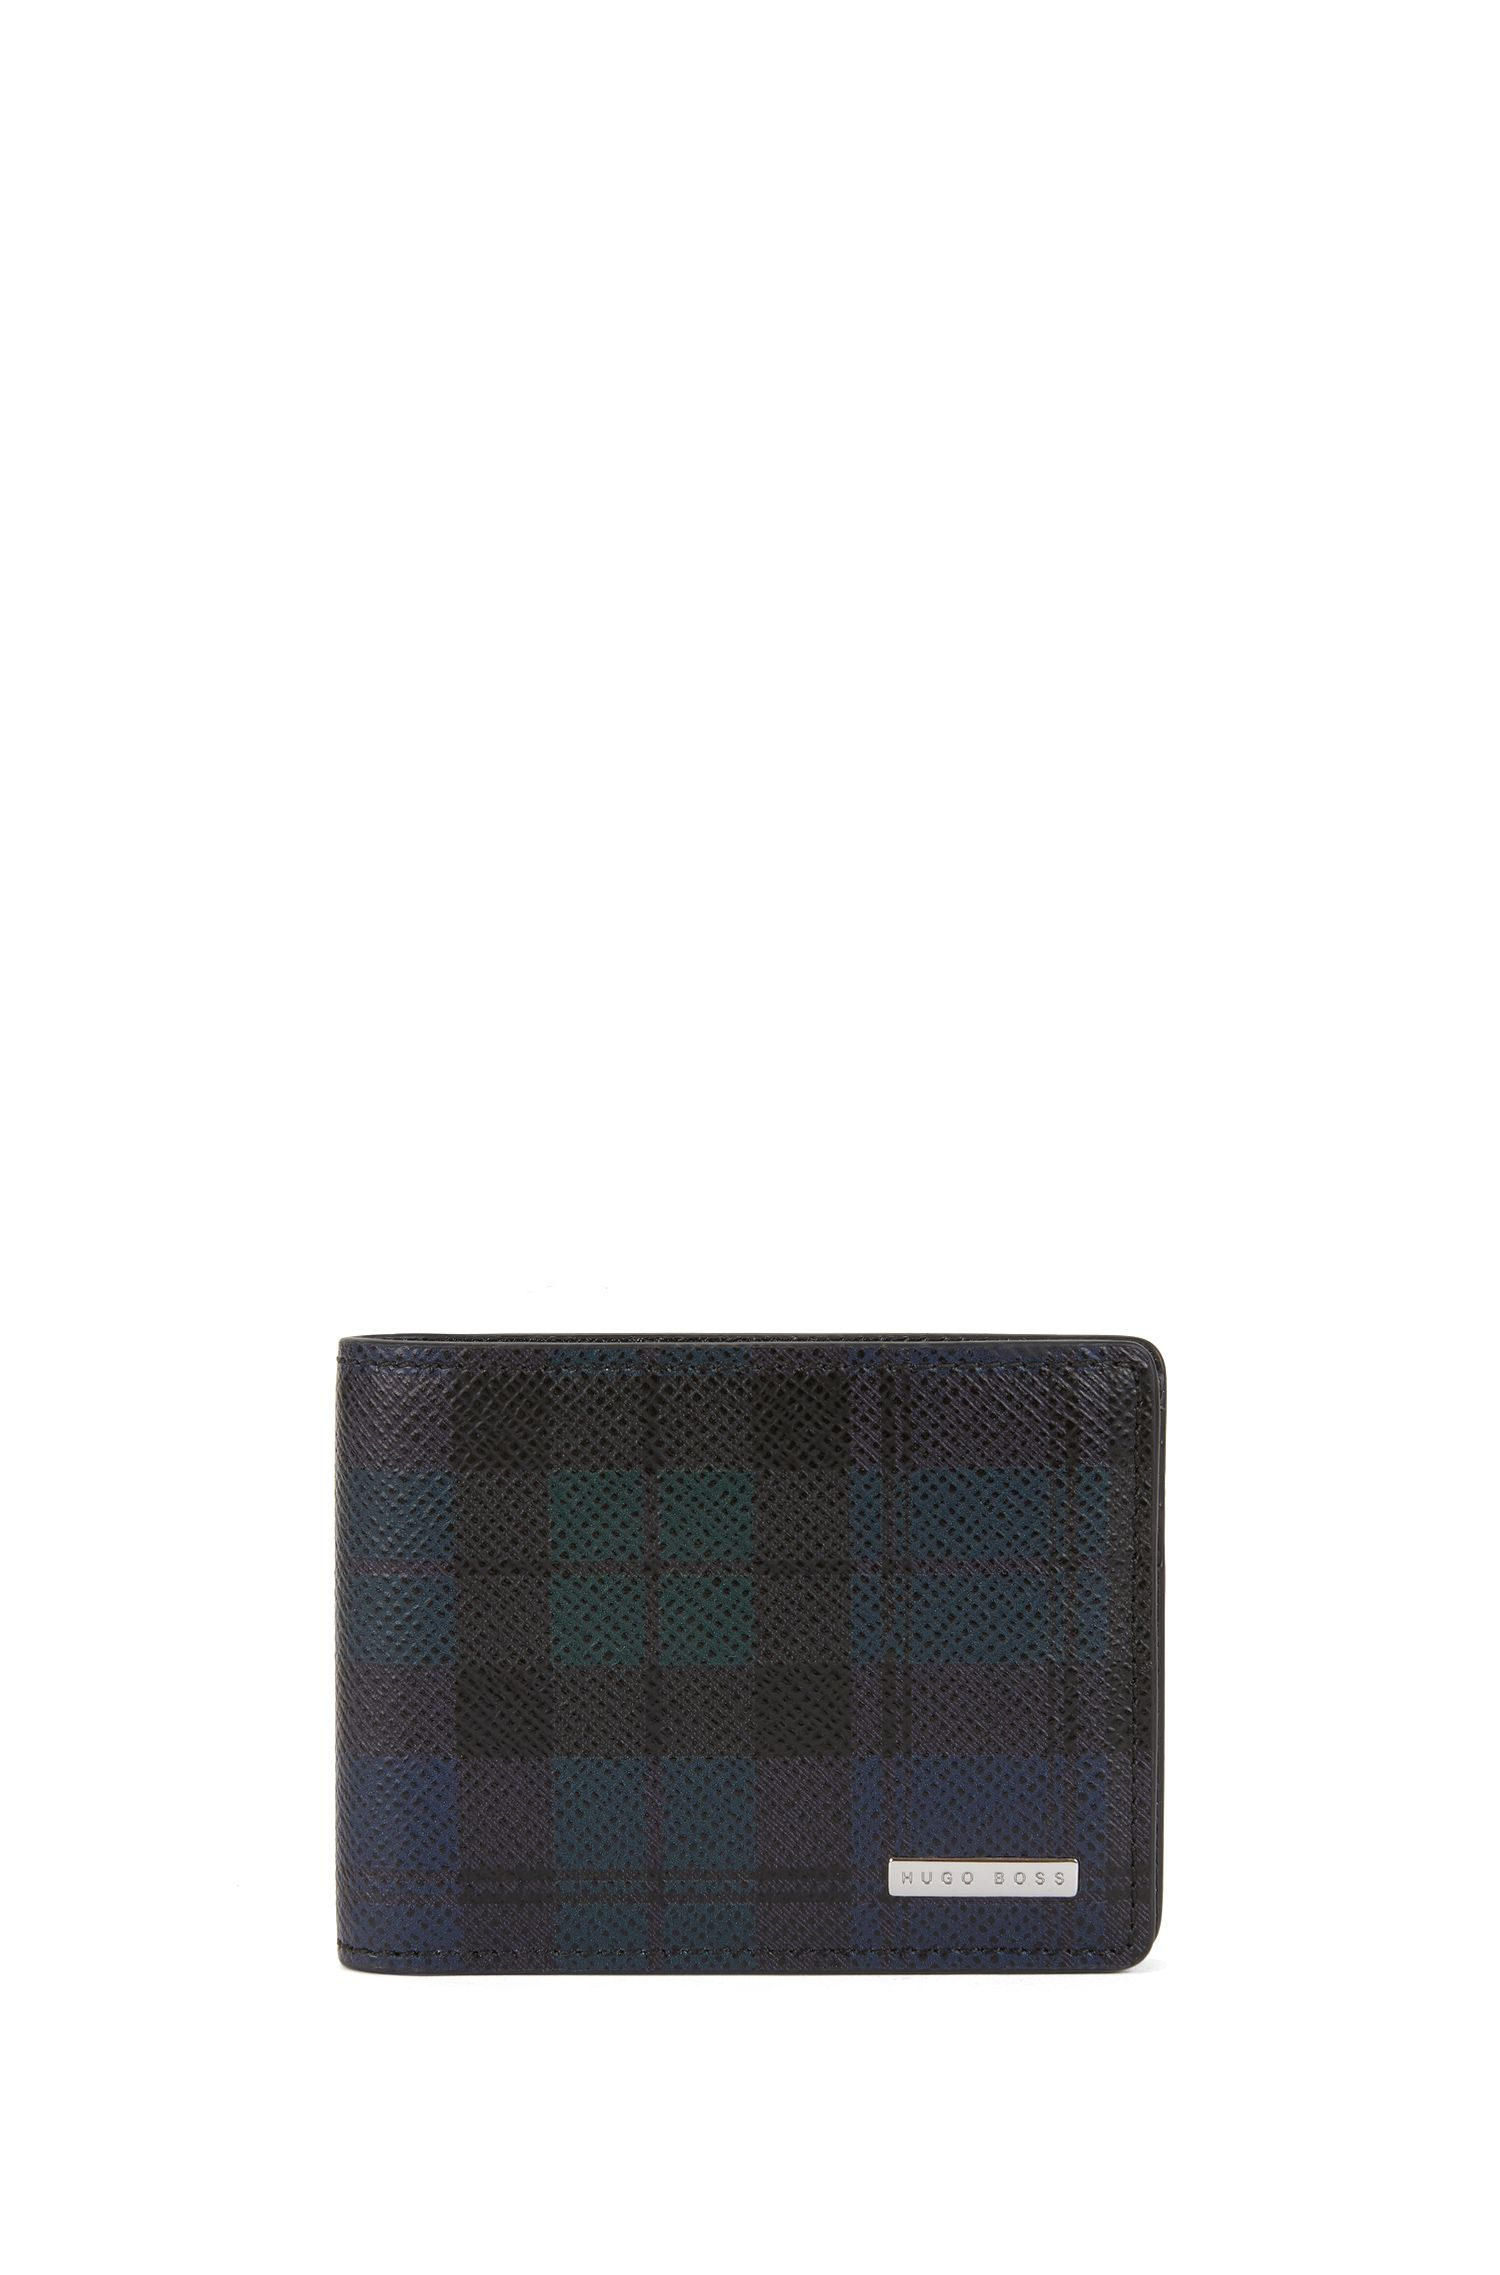 Black Watch Leather Billfold Wallet | Signature BW 6 cc, Patterned